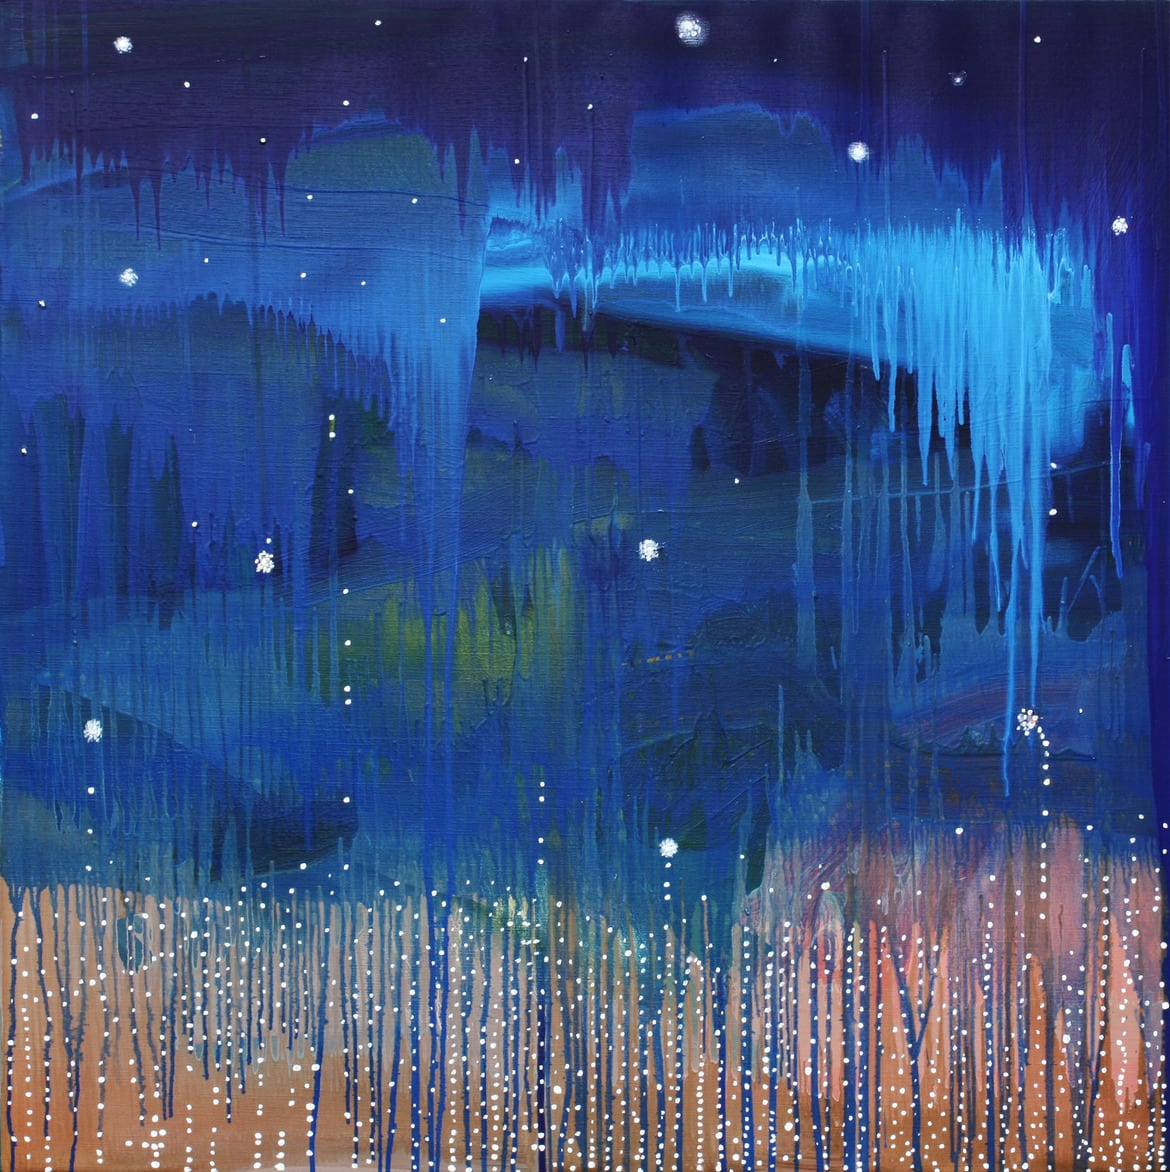 'The Ten Lights', 2017, oil and acrylic on linen, 100 x 100 cm